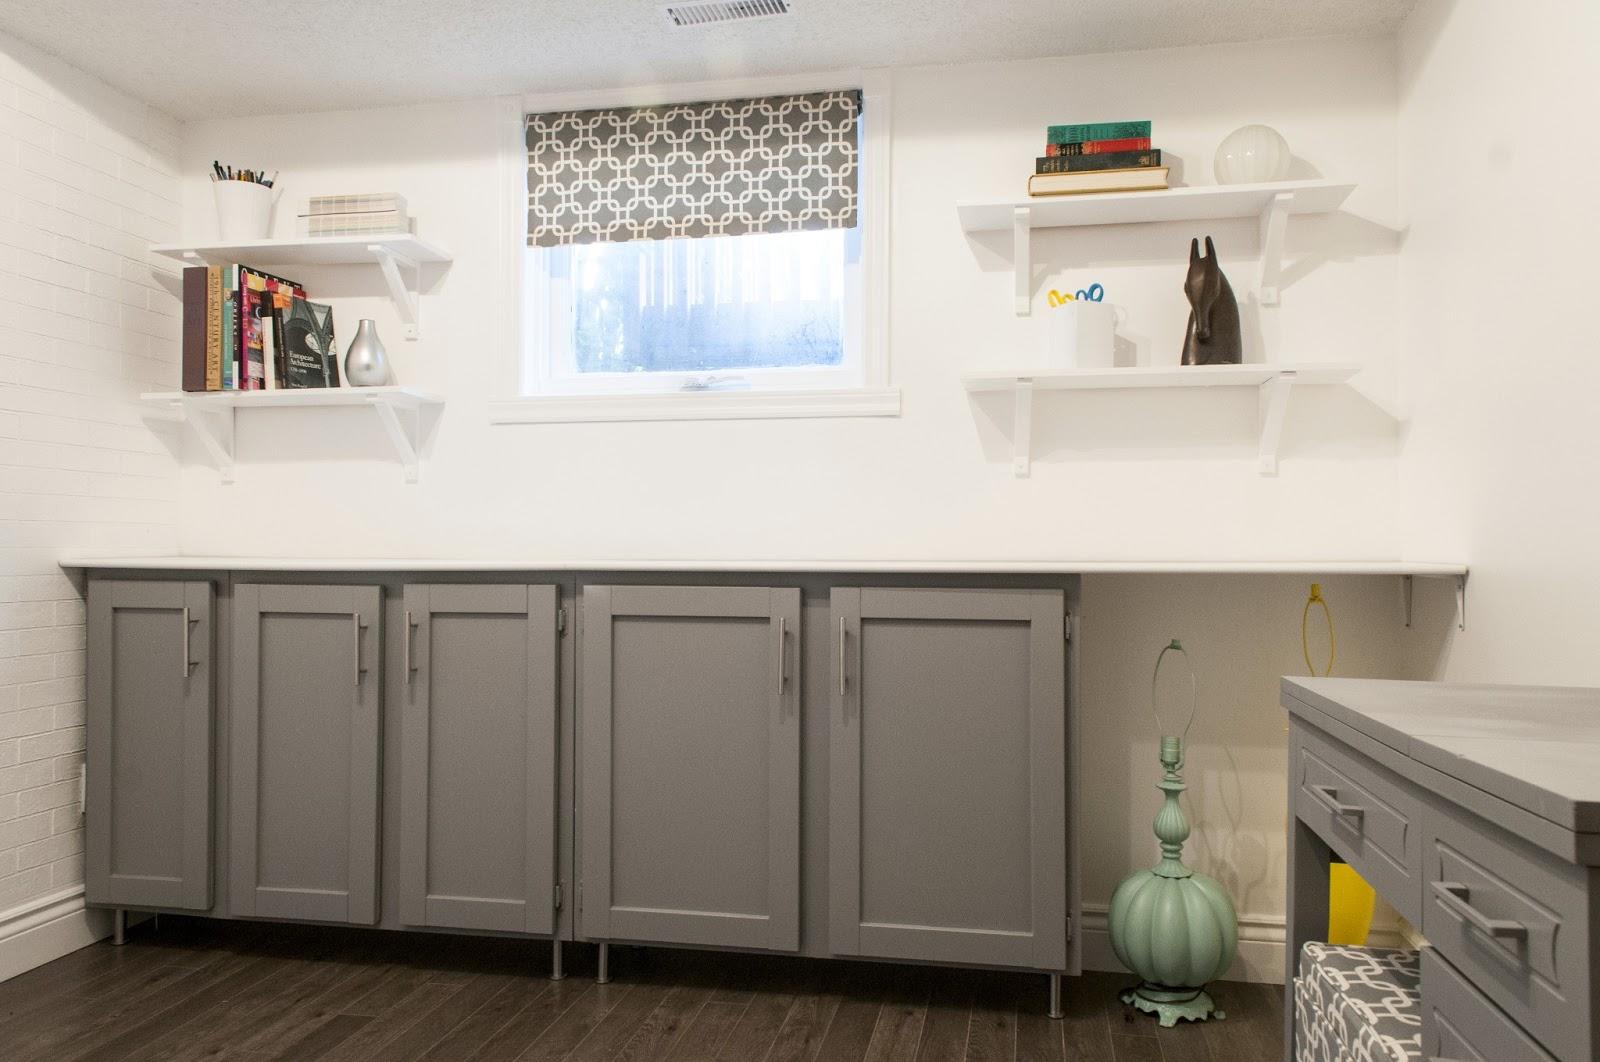 d i y d e s i g n: Upcycled Shaker-Panel Cabinet Doors